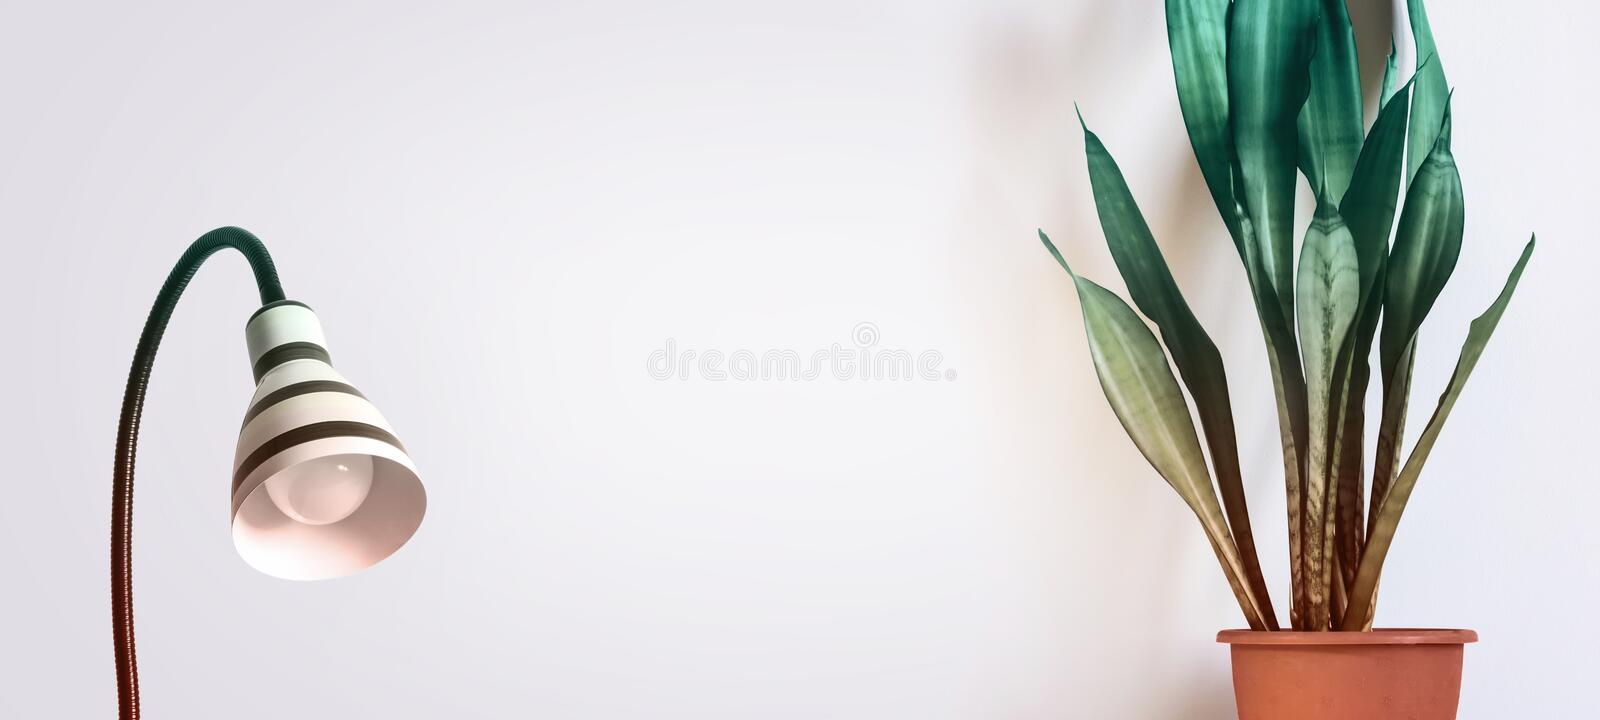 Indoor plant Sansevieria and stylish lamp against a white wall. Scandinavian interior Concept stock image